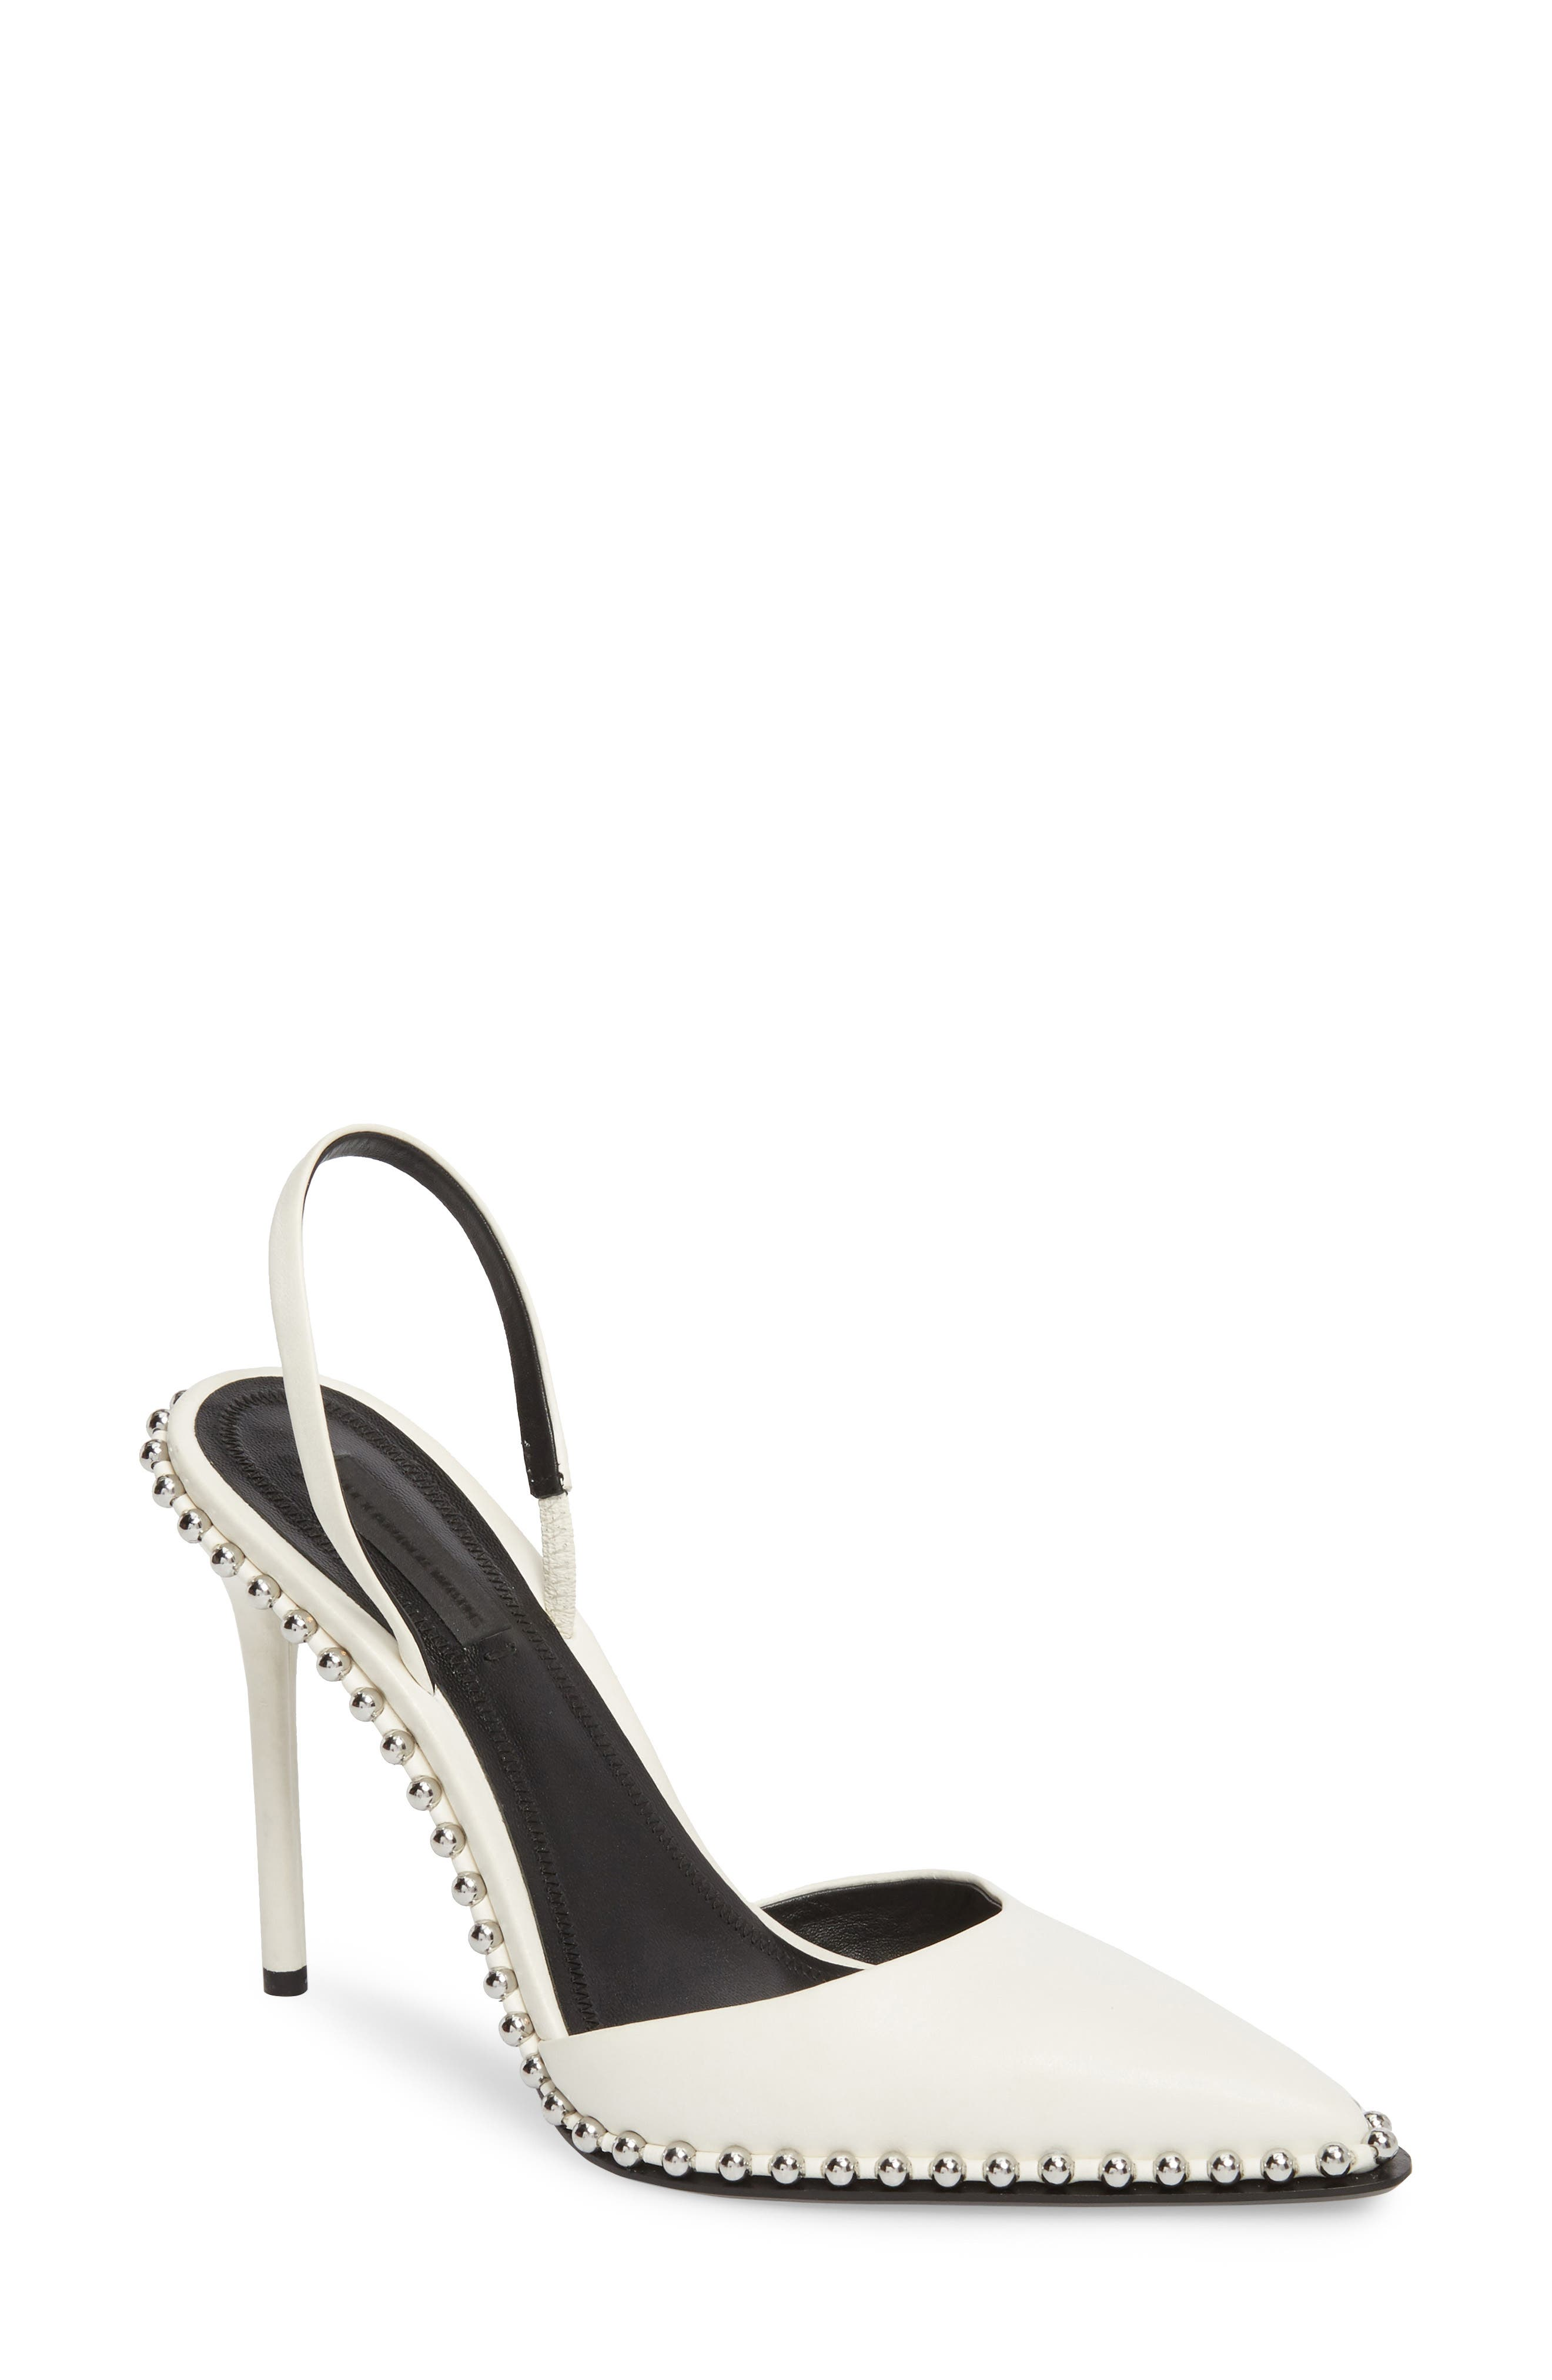 ALEXANDER WANG Rina Beaded Pump, Main, color, WHITE LEATHER